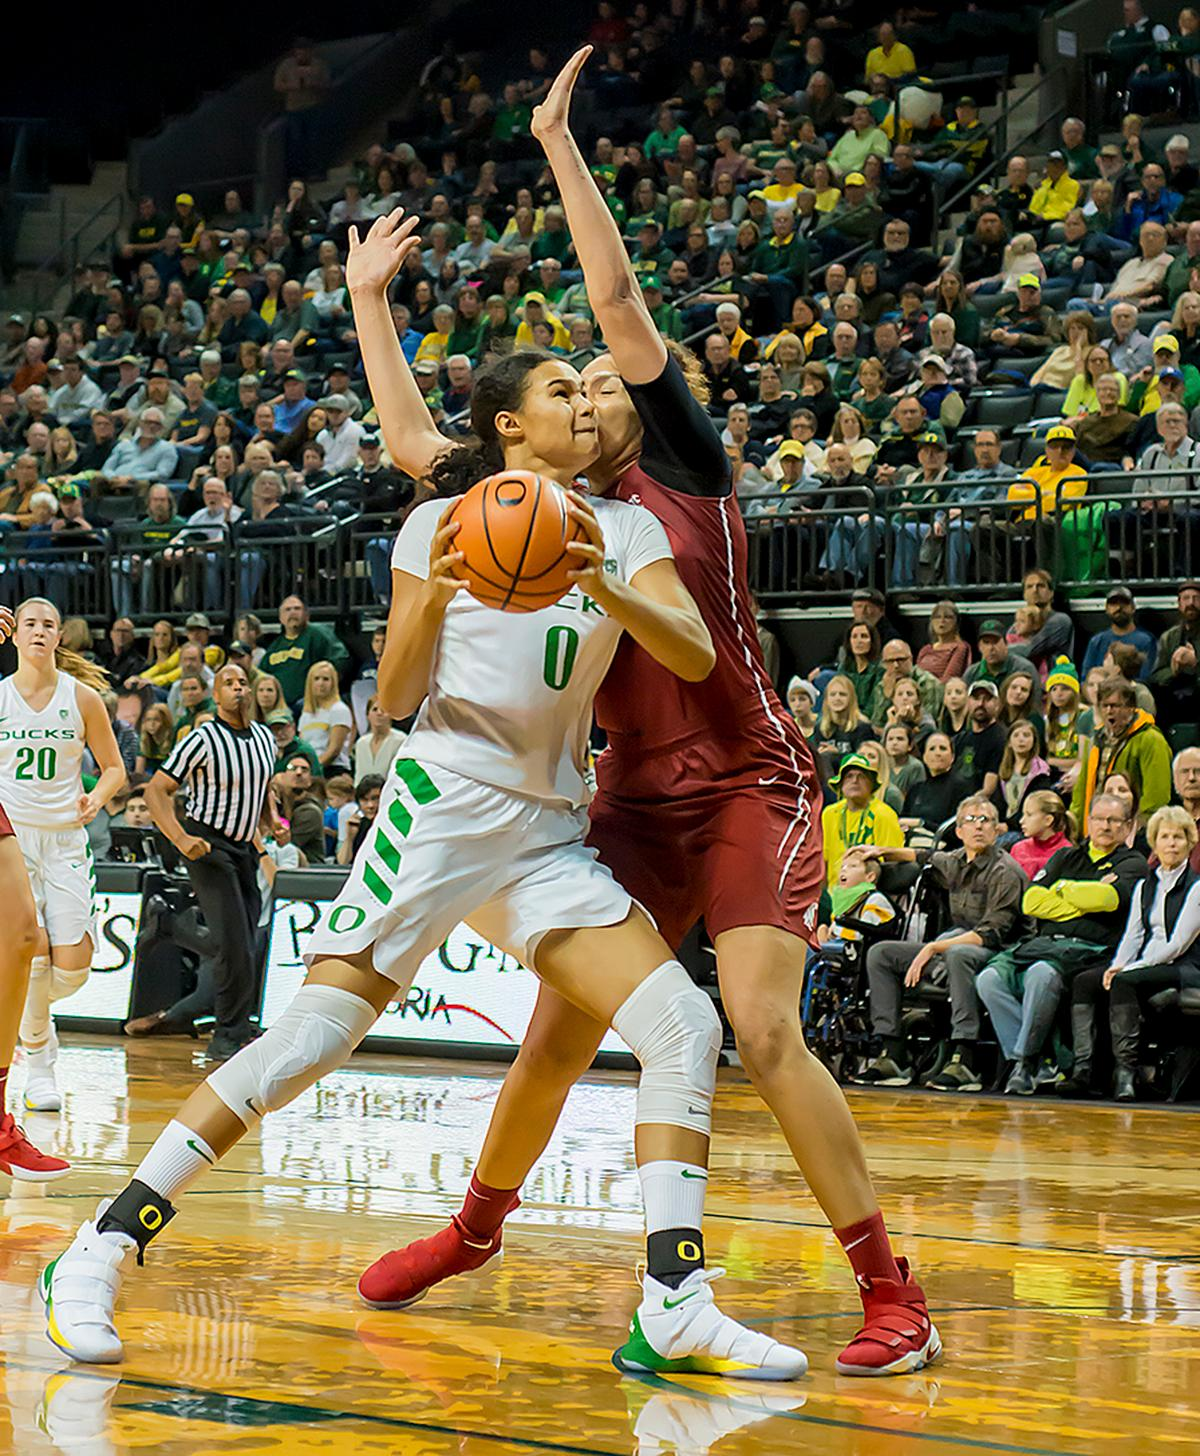 Oregon Ducks Satou Sabally (#0) attempts to drive past the block of Washington State University Cougars Nike McClure (#21). In their first conference basketball game of the season, the Oregon Women Ducks defeated the Washington State Cougars 89-56 in Matt Knight Arena Saturday afternoon. Oregon's Ruthy Hebard ran up 25 points with 10 rebounds. Sabrina Ionescu shot 25 points with five three-pointers and three rebounds. Lexi Bando added 18 points, with four three-pointers and pulled down three rebounds. Satou Sabally ended the game with 14 points with one three-pointer and two rebounds. The Ducks are now 12-2 overall with 1-0 in conference and the Cougars stand at 7-6 overall and 0-1 in conference play. The Oregon Women Ducks next play the University of Washington Huskies at 1:00 pm on Sunday. Photo by Karly DeWees, Oregon News Lab